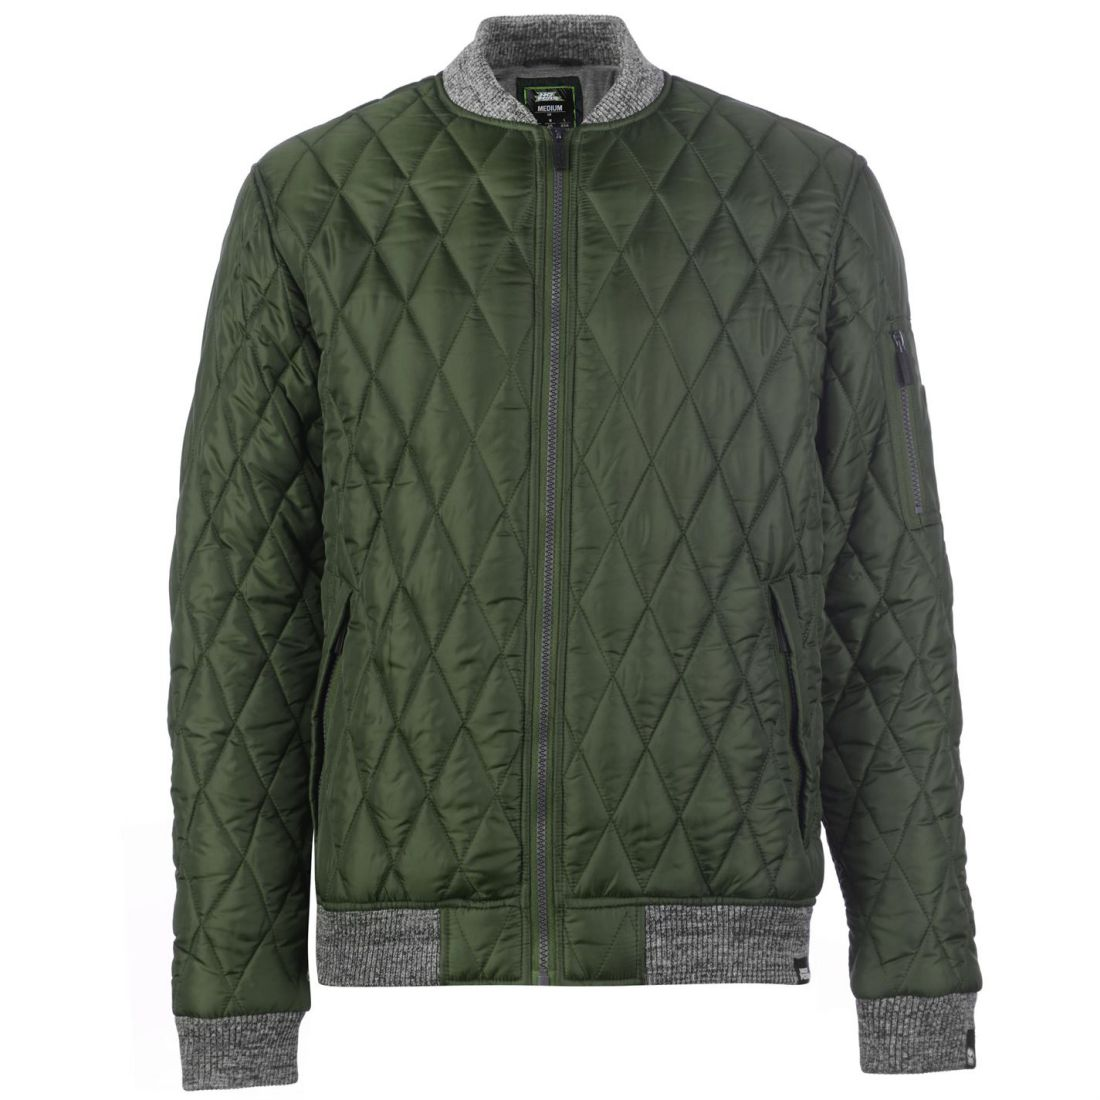 No-Fear-Quilted-Bomber-Jacket-Mens-Gents-Coat-Top-Full-Length-Sleeve-Zip-Zipped thumbnail 3